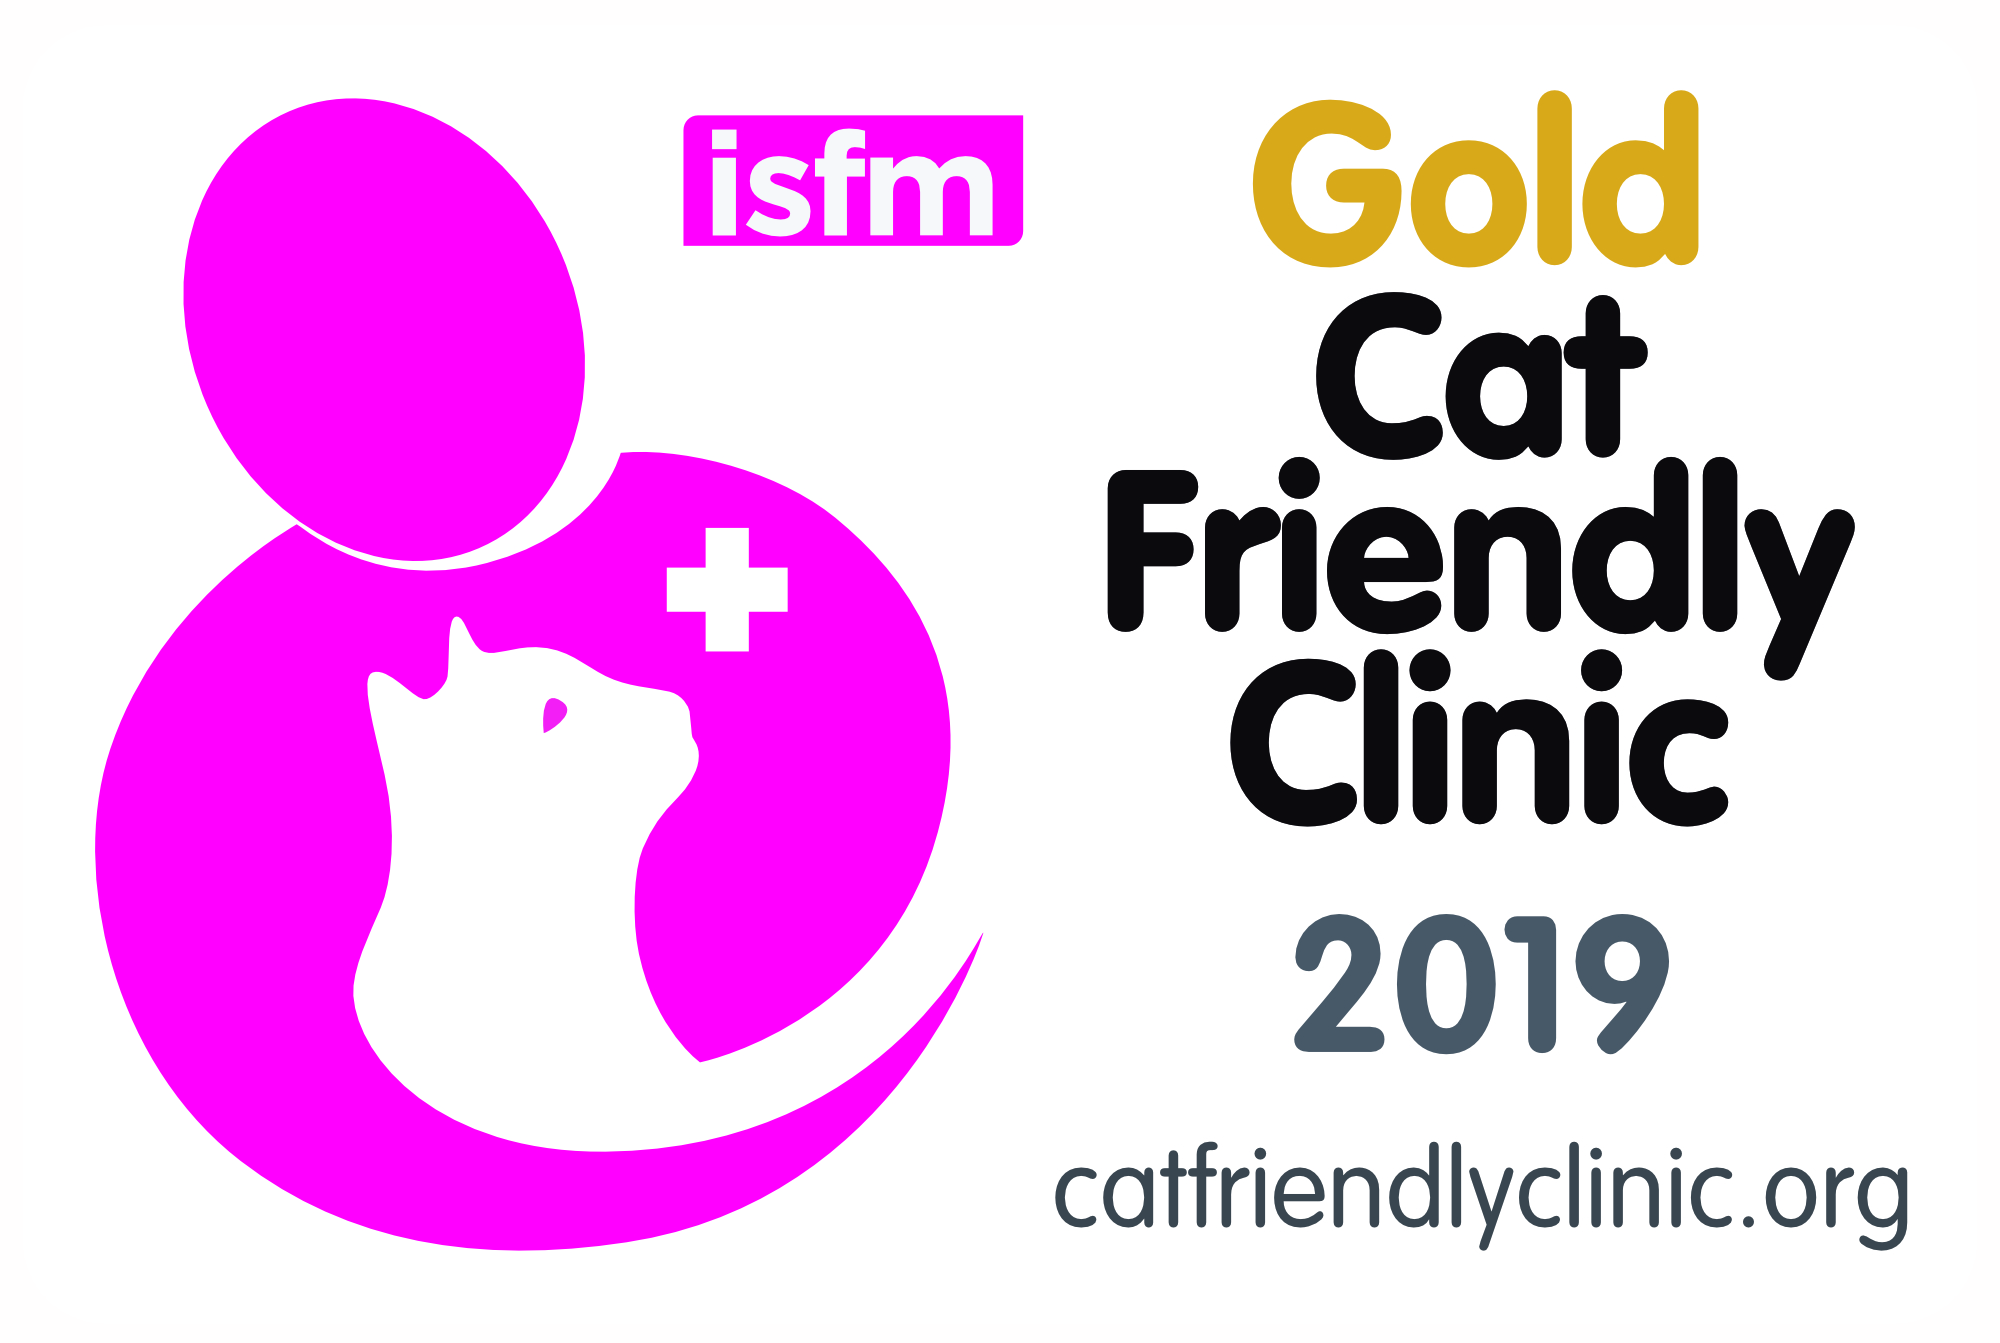 Cat FriendLY Clinic(CFC)のGOLDクラスの認定